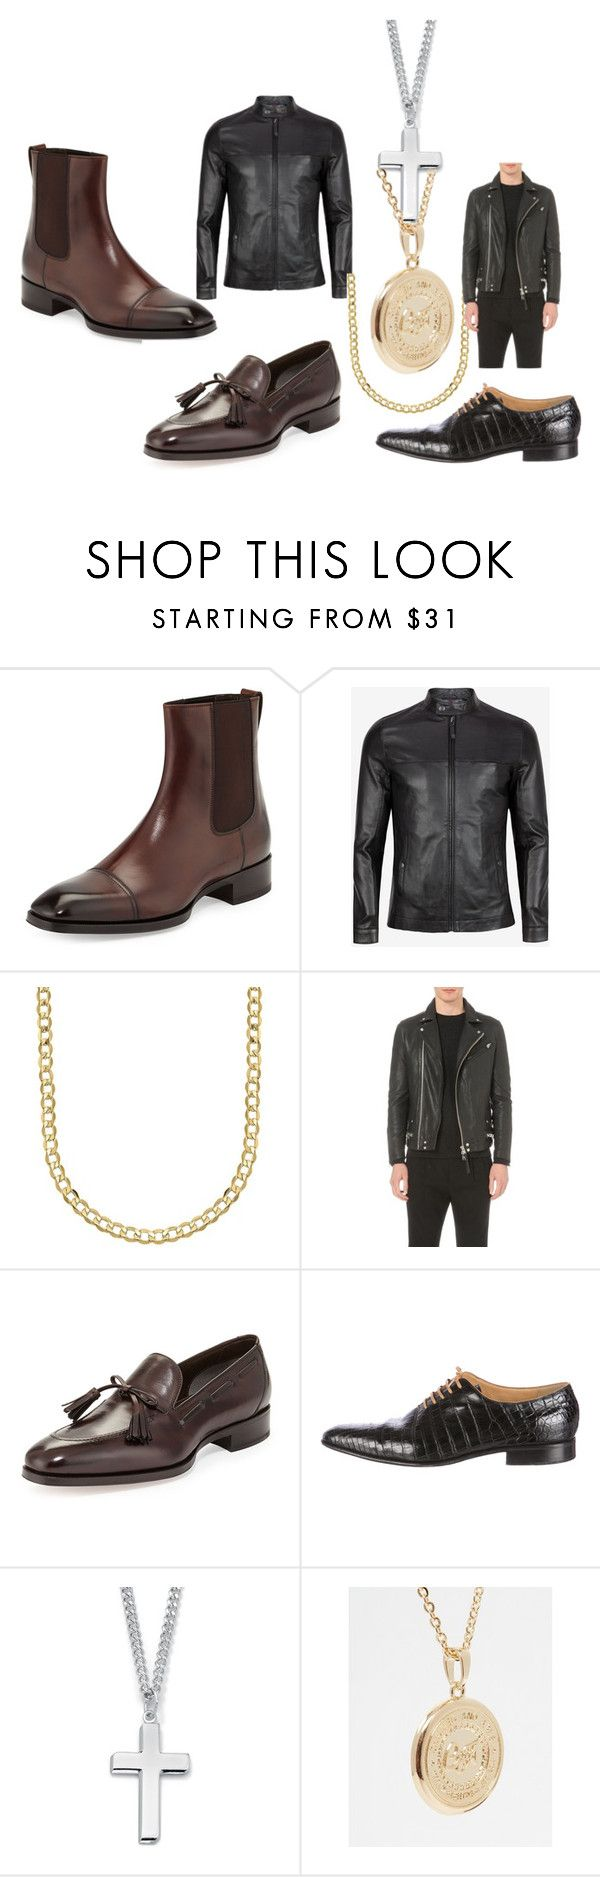 """men"" by srishti-kar on Polyvore featuring Tom Ford, Ted Baker, Lord & Taylor, AllSaints, Stefano Ricci, Palm Beach Jewelry, Chained + Able, men's fashion and menswear"